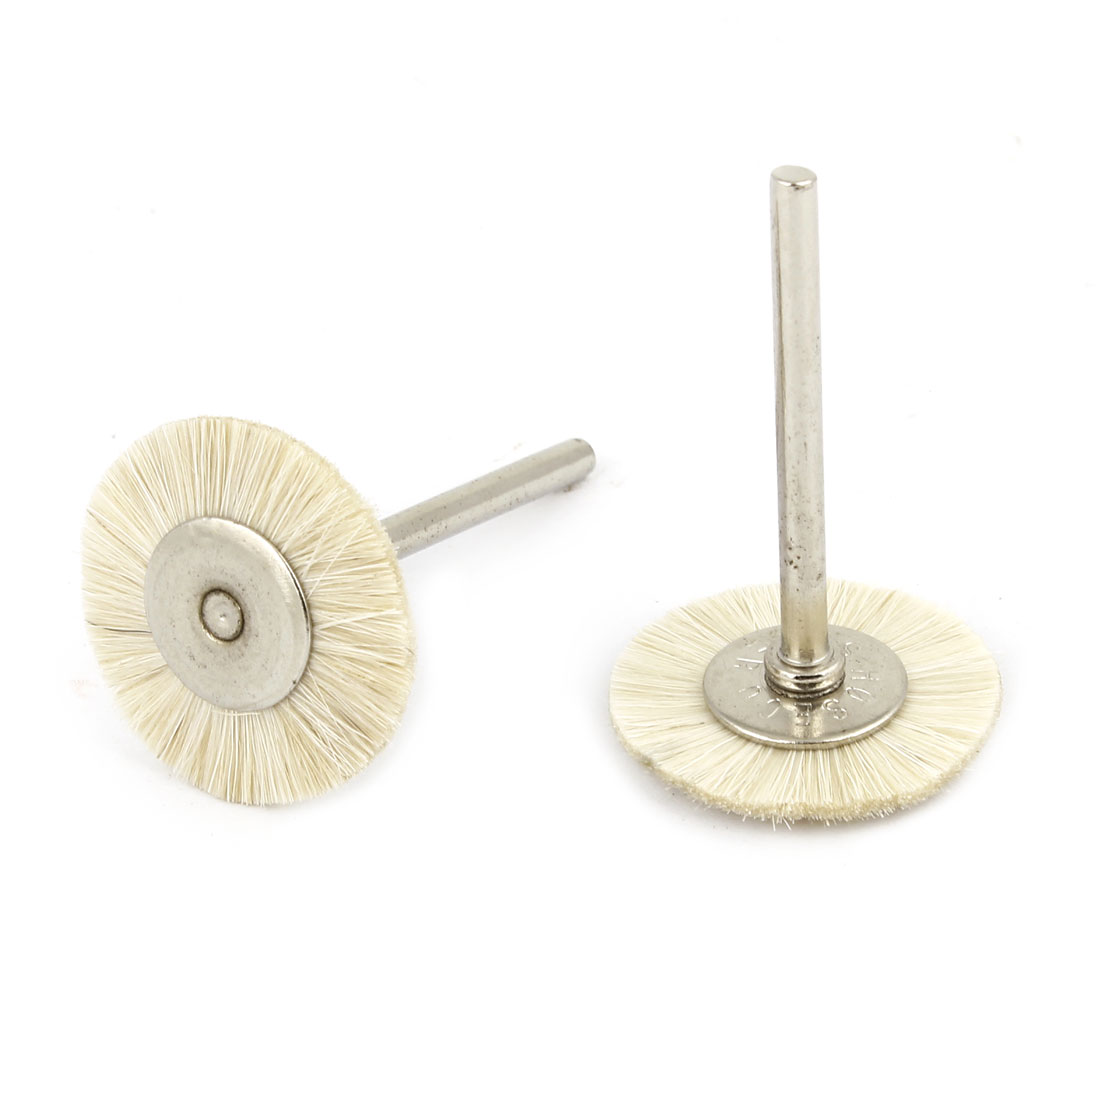 2 Pcs Replacement 25mm Dia White Nylon Brush Polishing Wheel Polishers for Rotary Tool